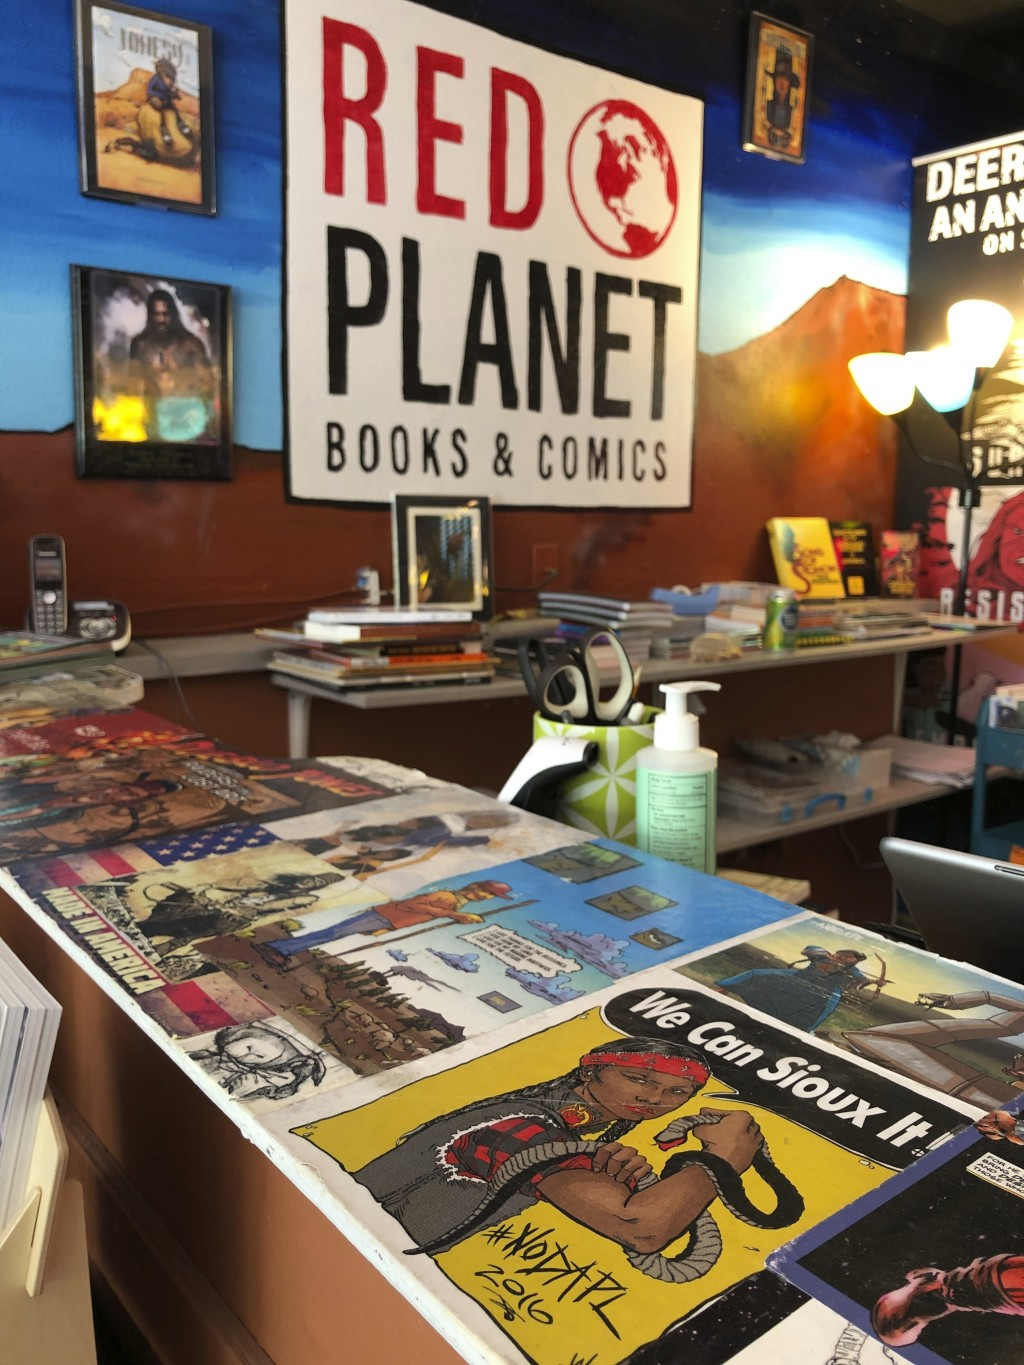 This Aug. 19, 2020, image shows some of the art that decorates the counters and walls at Red Planet Books & Comics in Albuquerque, N.M. Marvel Comics ...